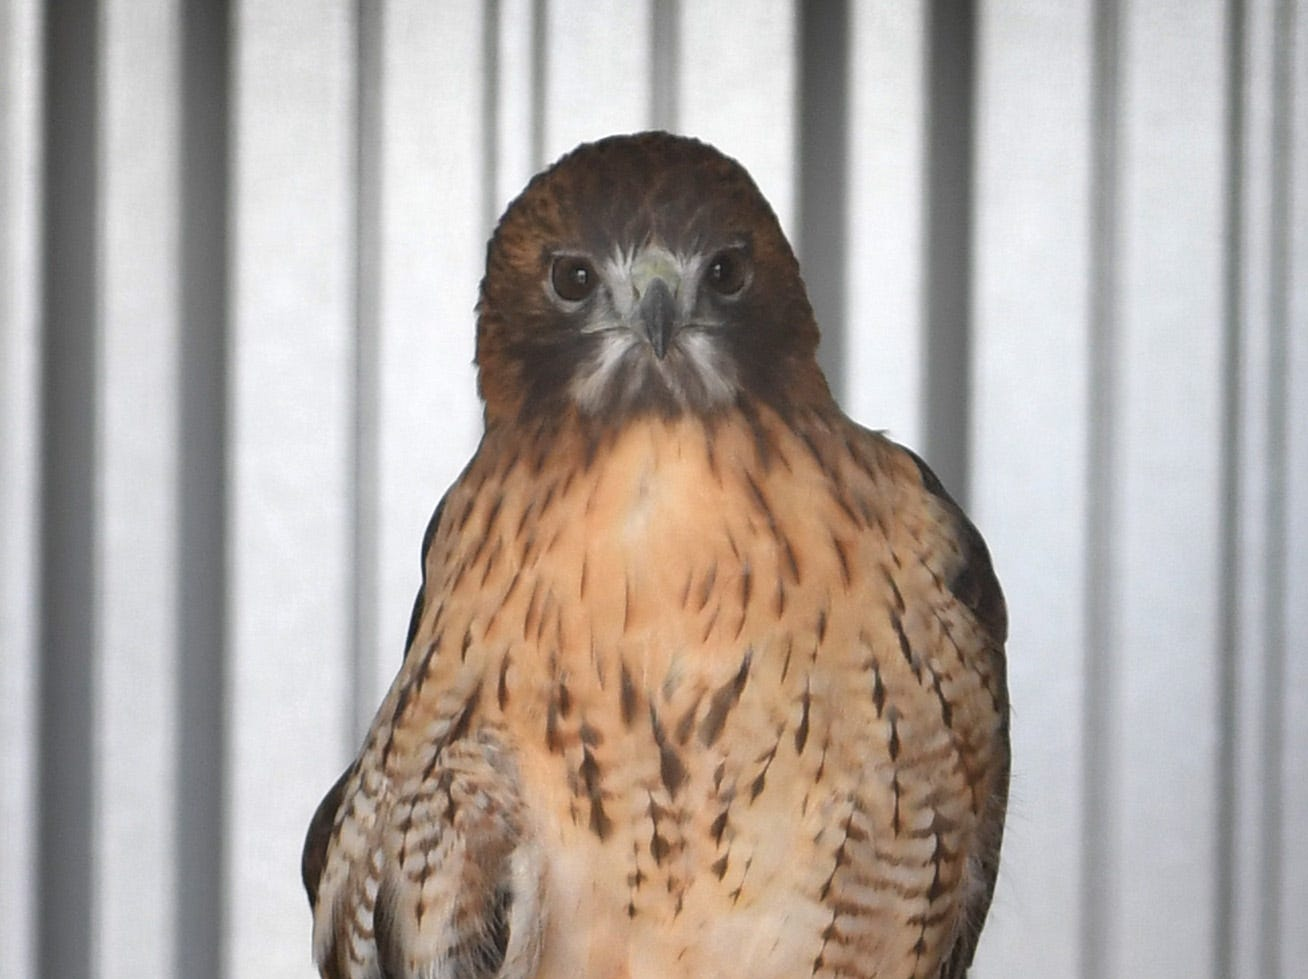 Wild Bird Rescue held a grand opening for its new Exhibit and Education building Thursday morning. Raptors like Sparticus, a male Red Tailed Hawk, live there.